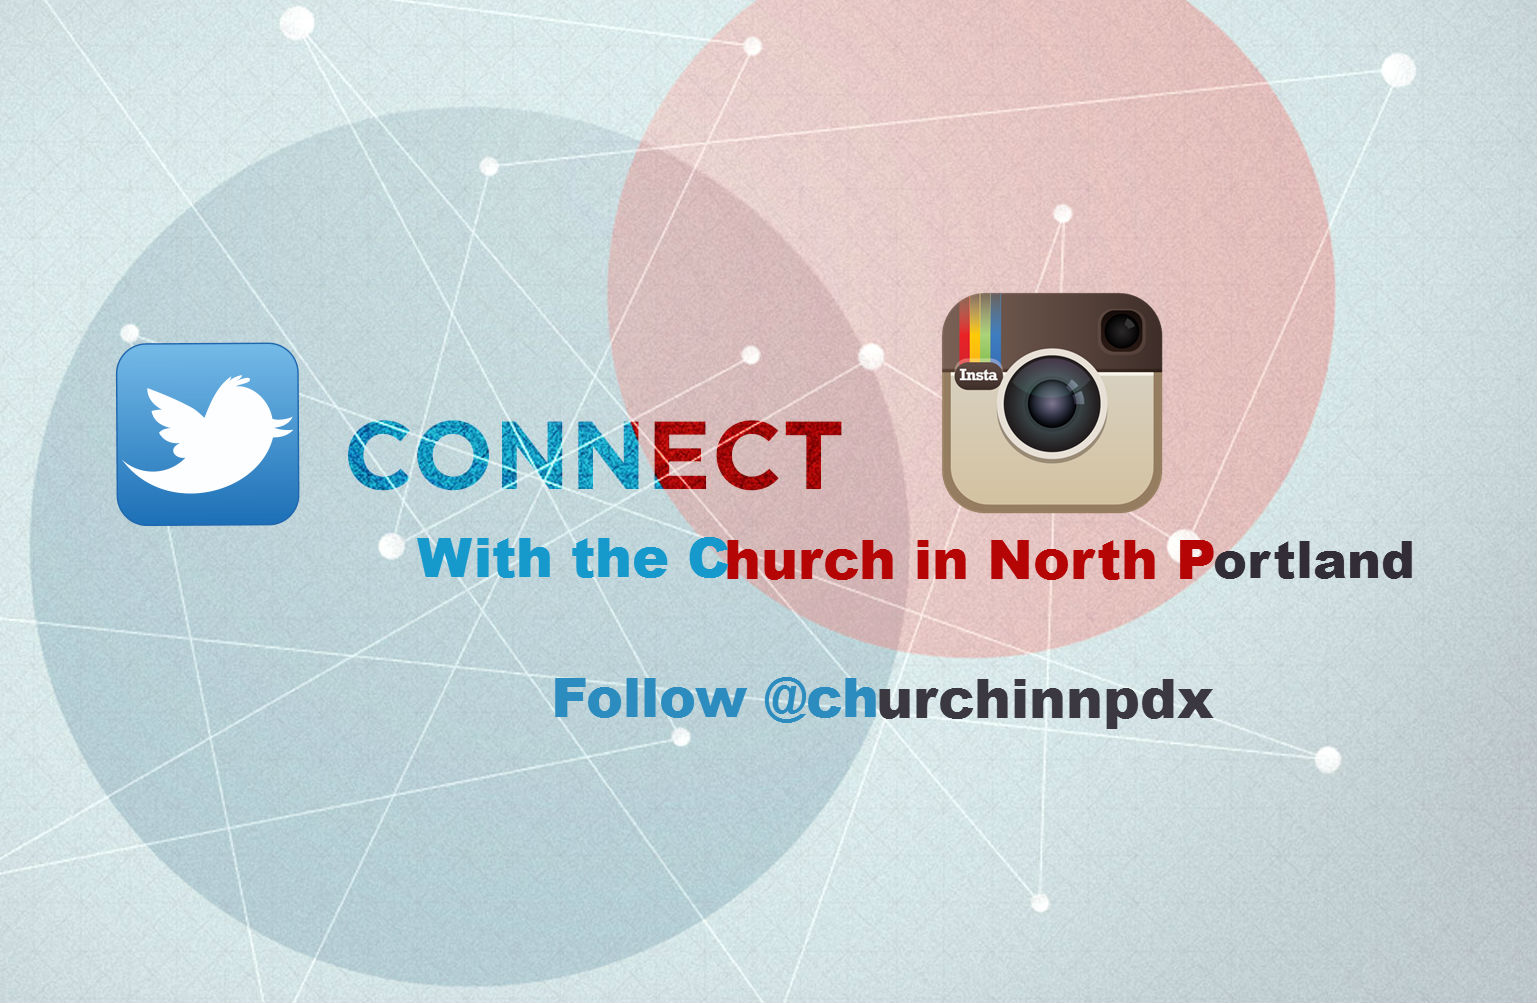 Stay connected with the Church in North Portland